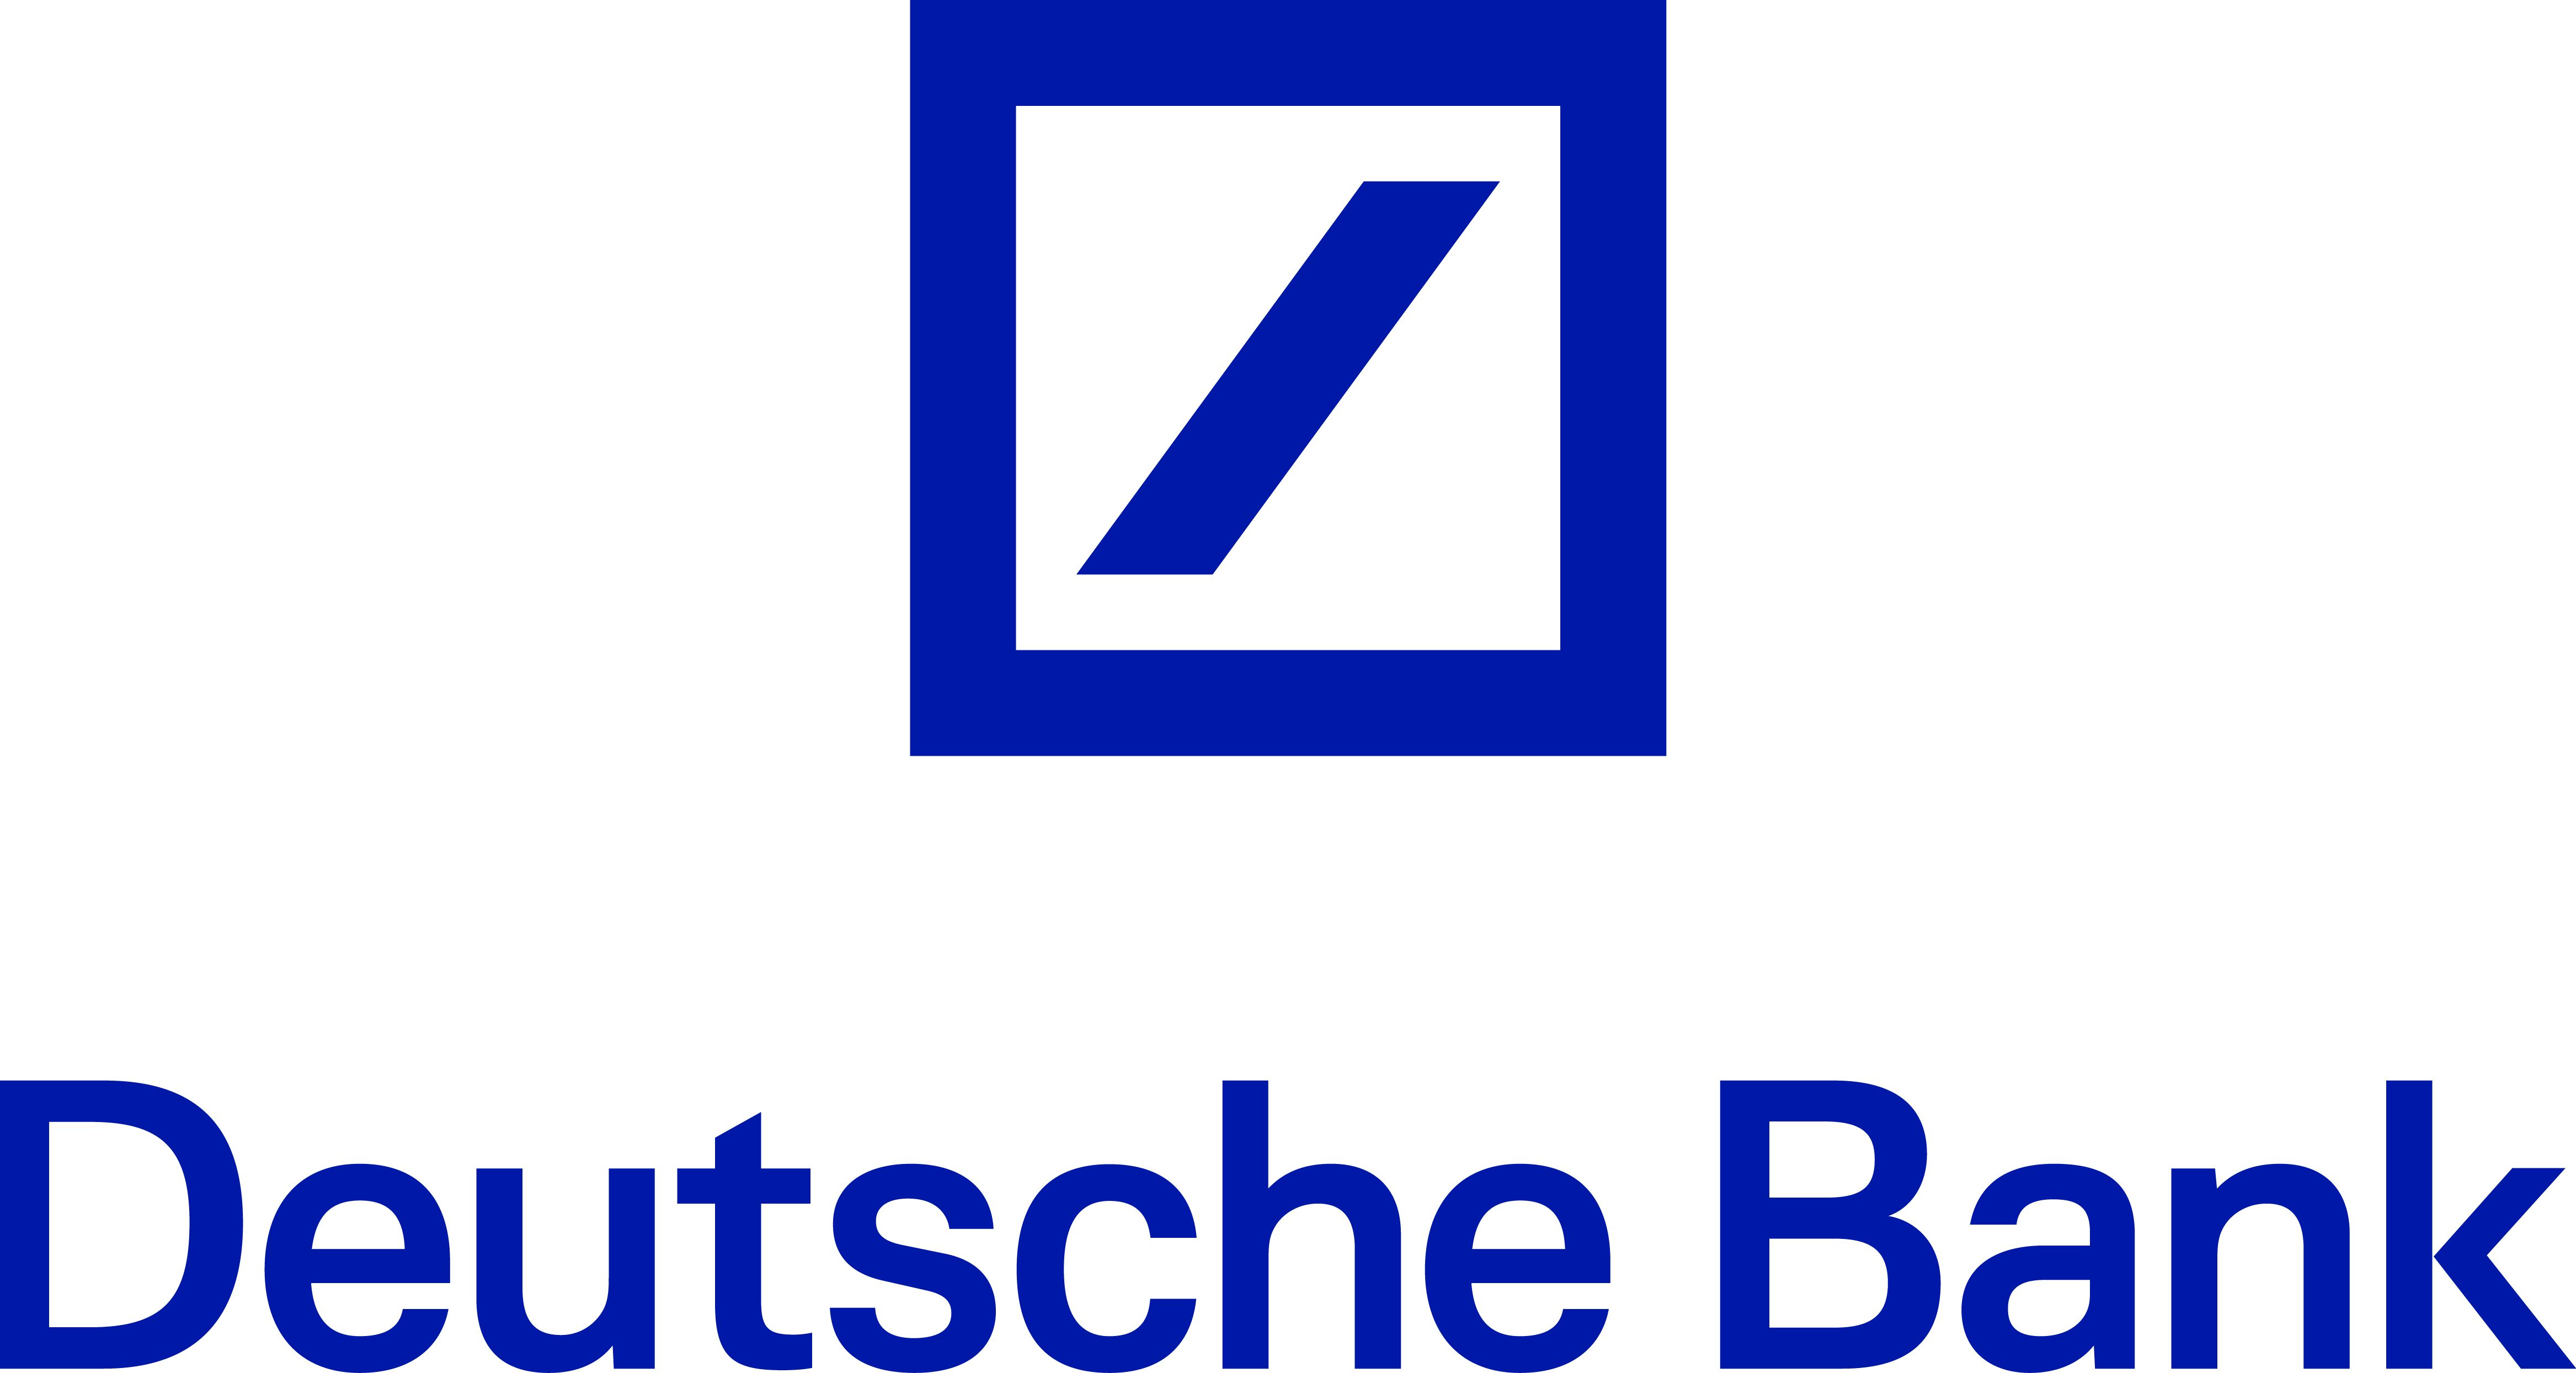 Deutsche Bank We want to take the interests of the